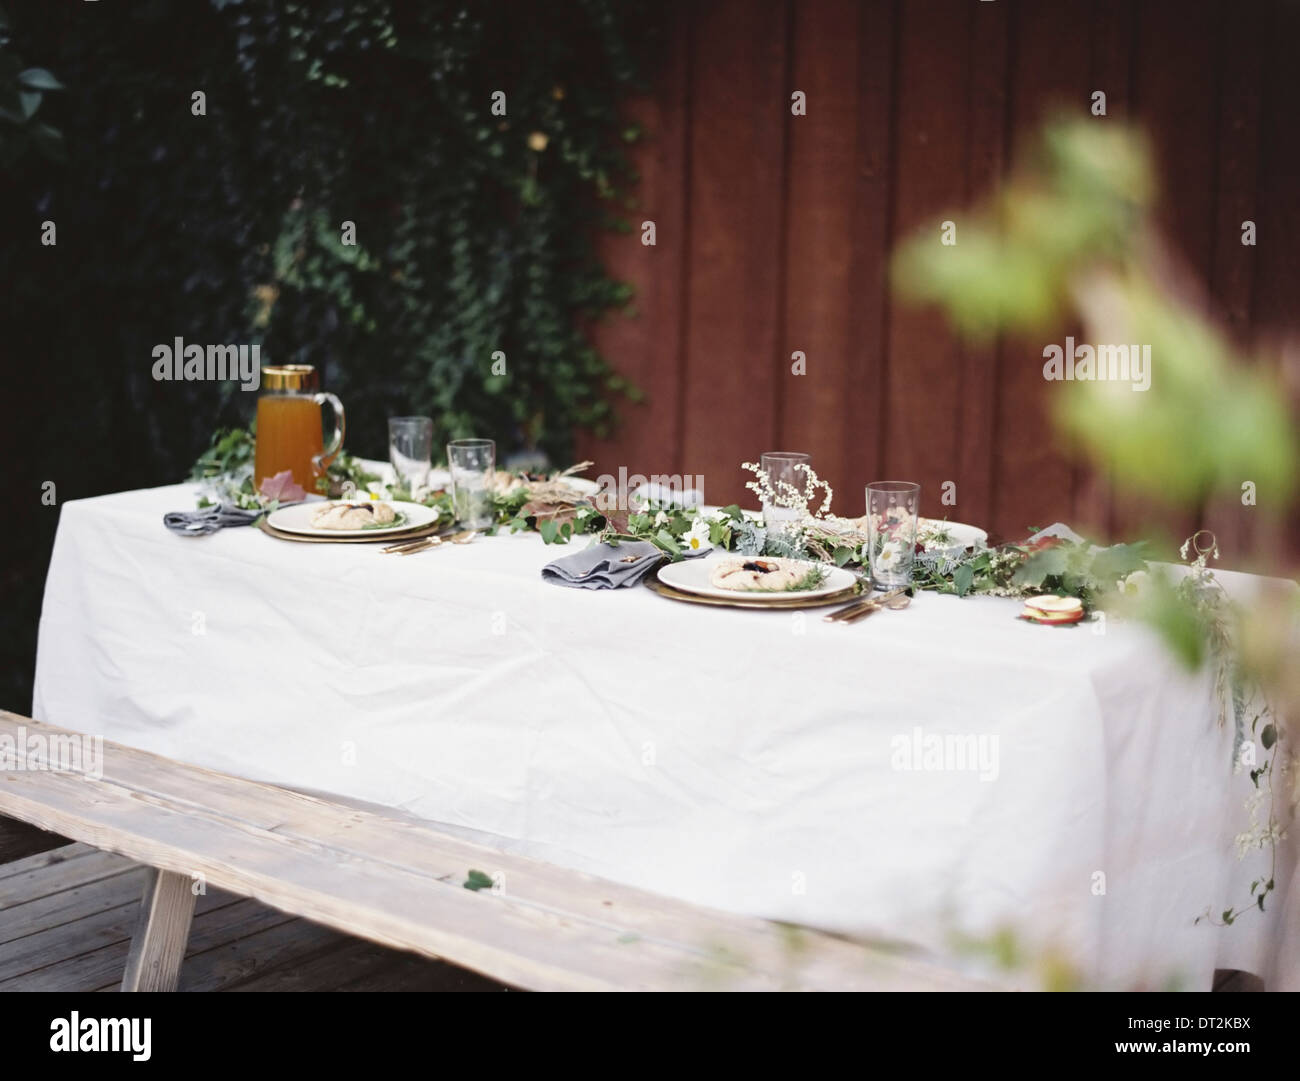 A table laid for a special meal Place settings with plates and cutlery Glasses A white table cloth and bench seat Plates of food - Stock Image